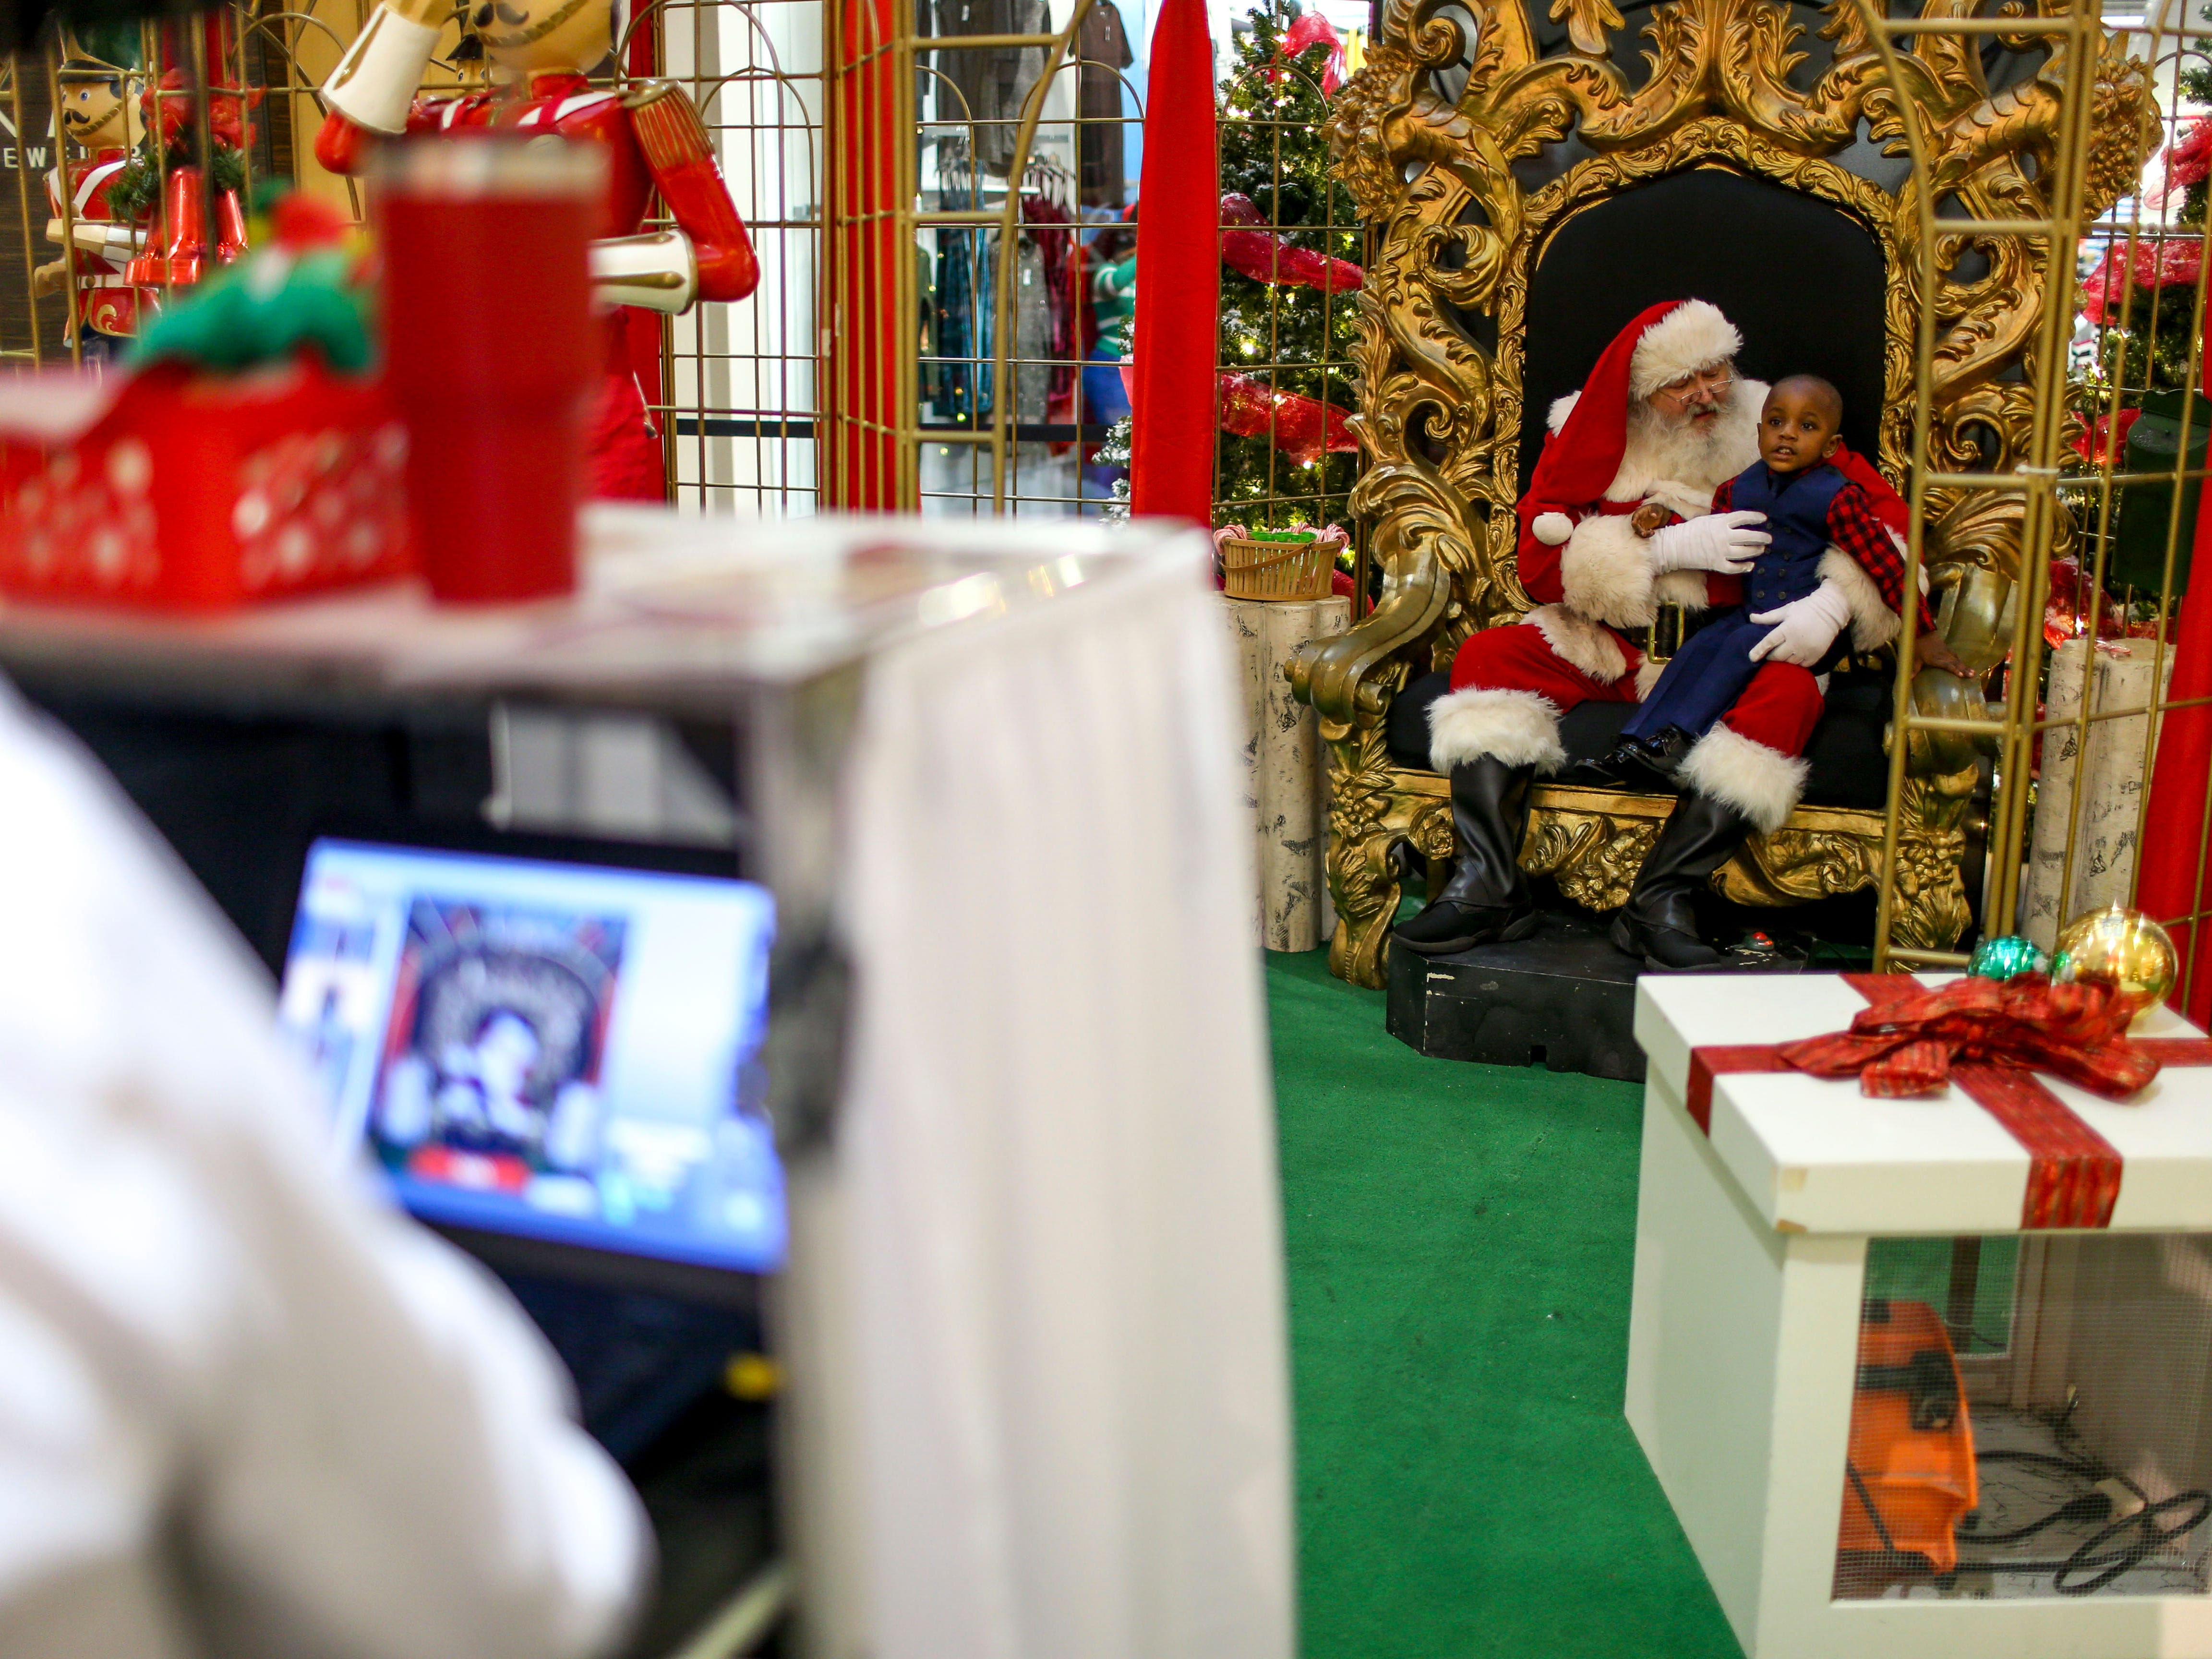 Cherry Hill employees operate a camera booth while Ryan Lyonga, 2, gets his photo taken with Santa Claus at Old Hickory Mall in Jackson, Tenn., on Wednesday, Nov. 21, 2018.